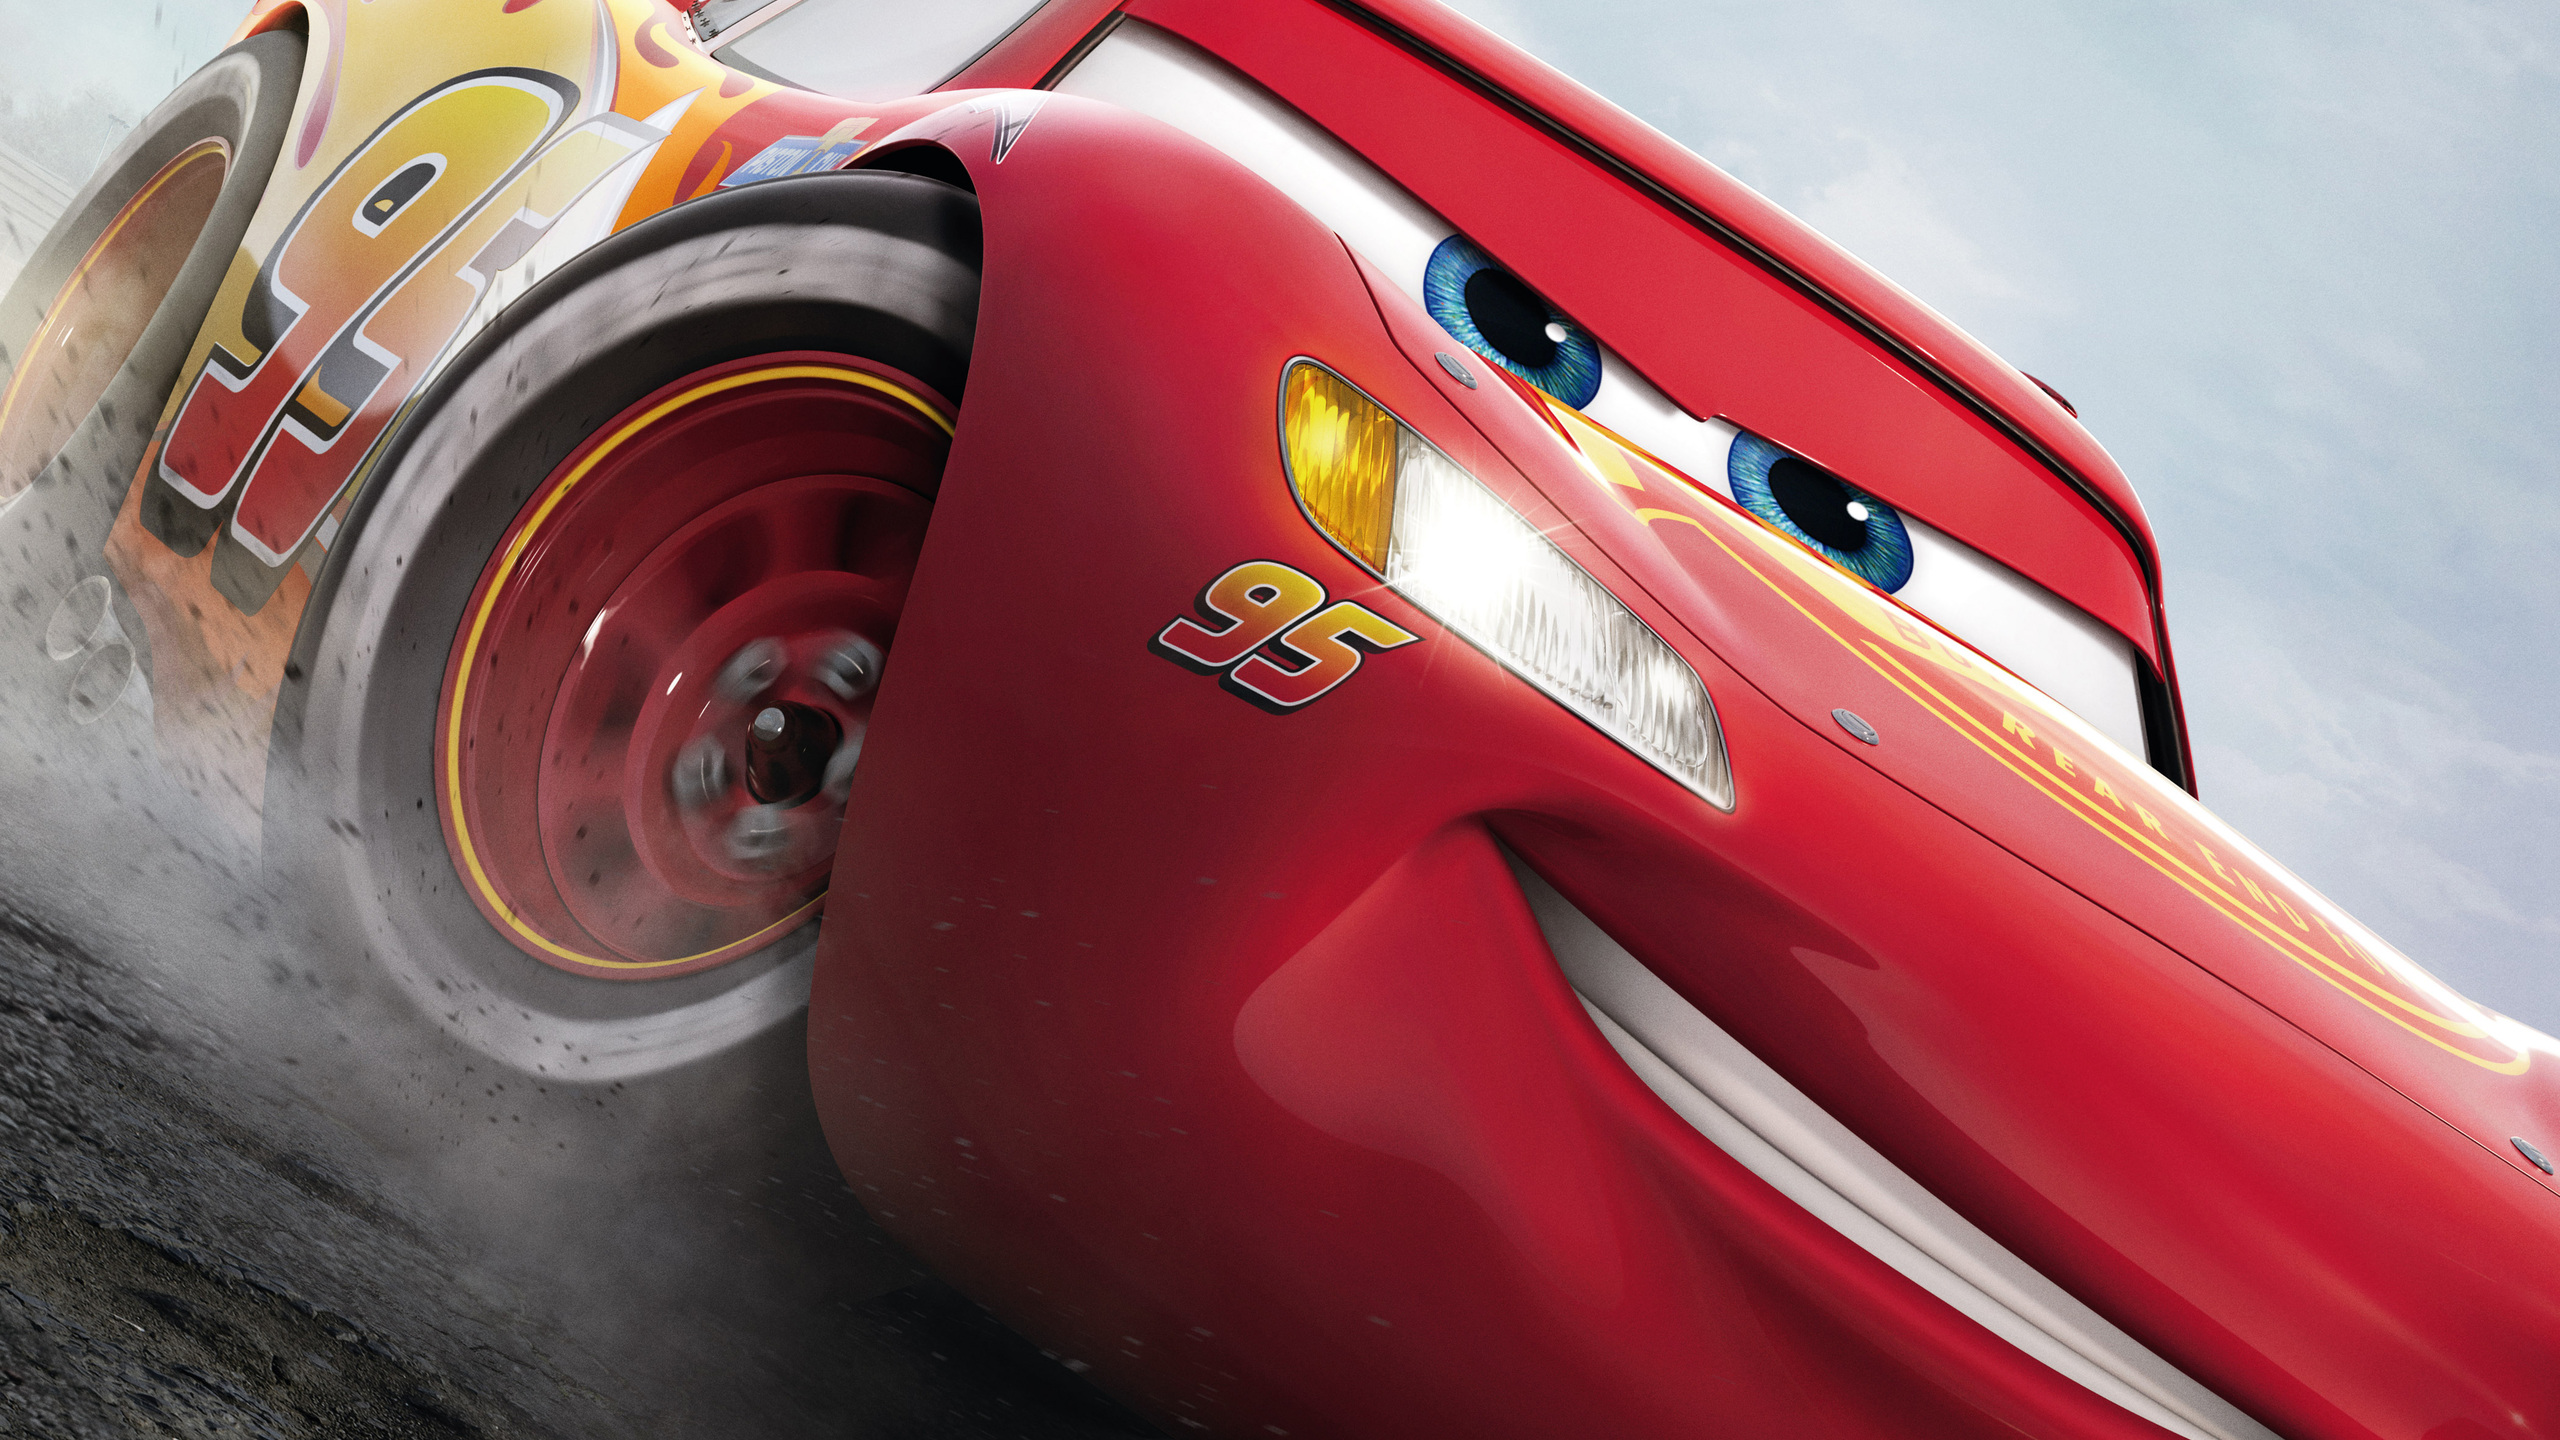 2560x1440 Lightning Mcqueen Cars 3 1440p Resolution Hd 4k